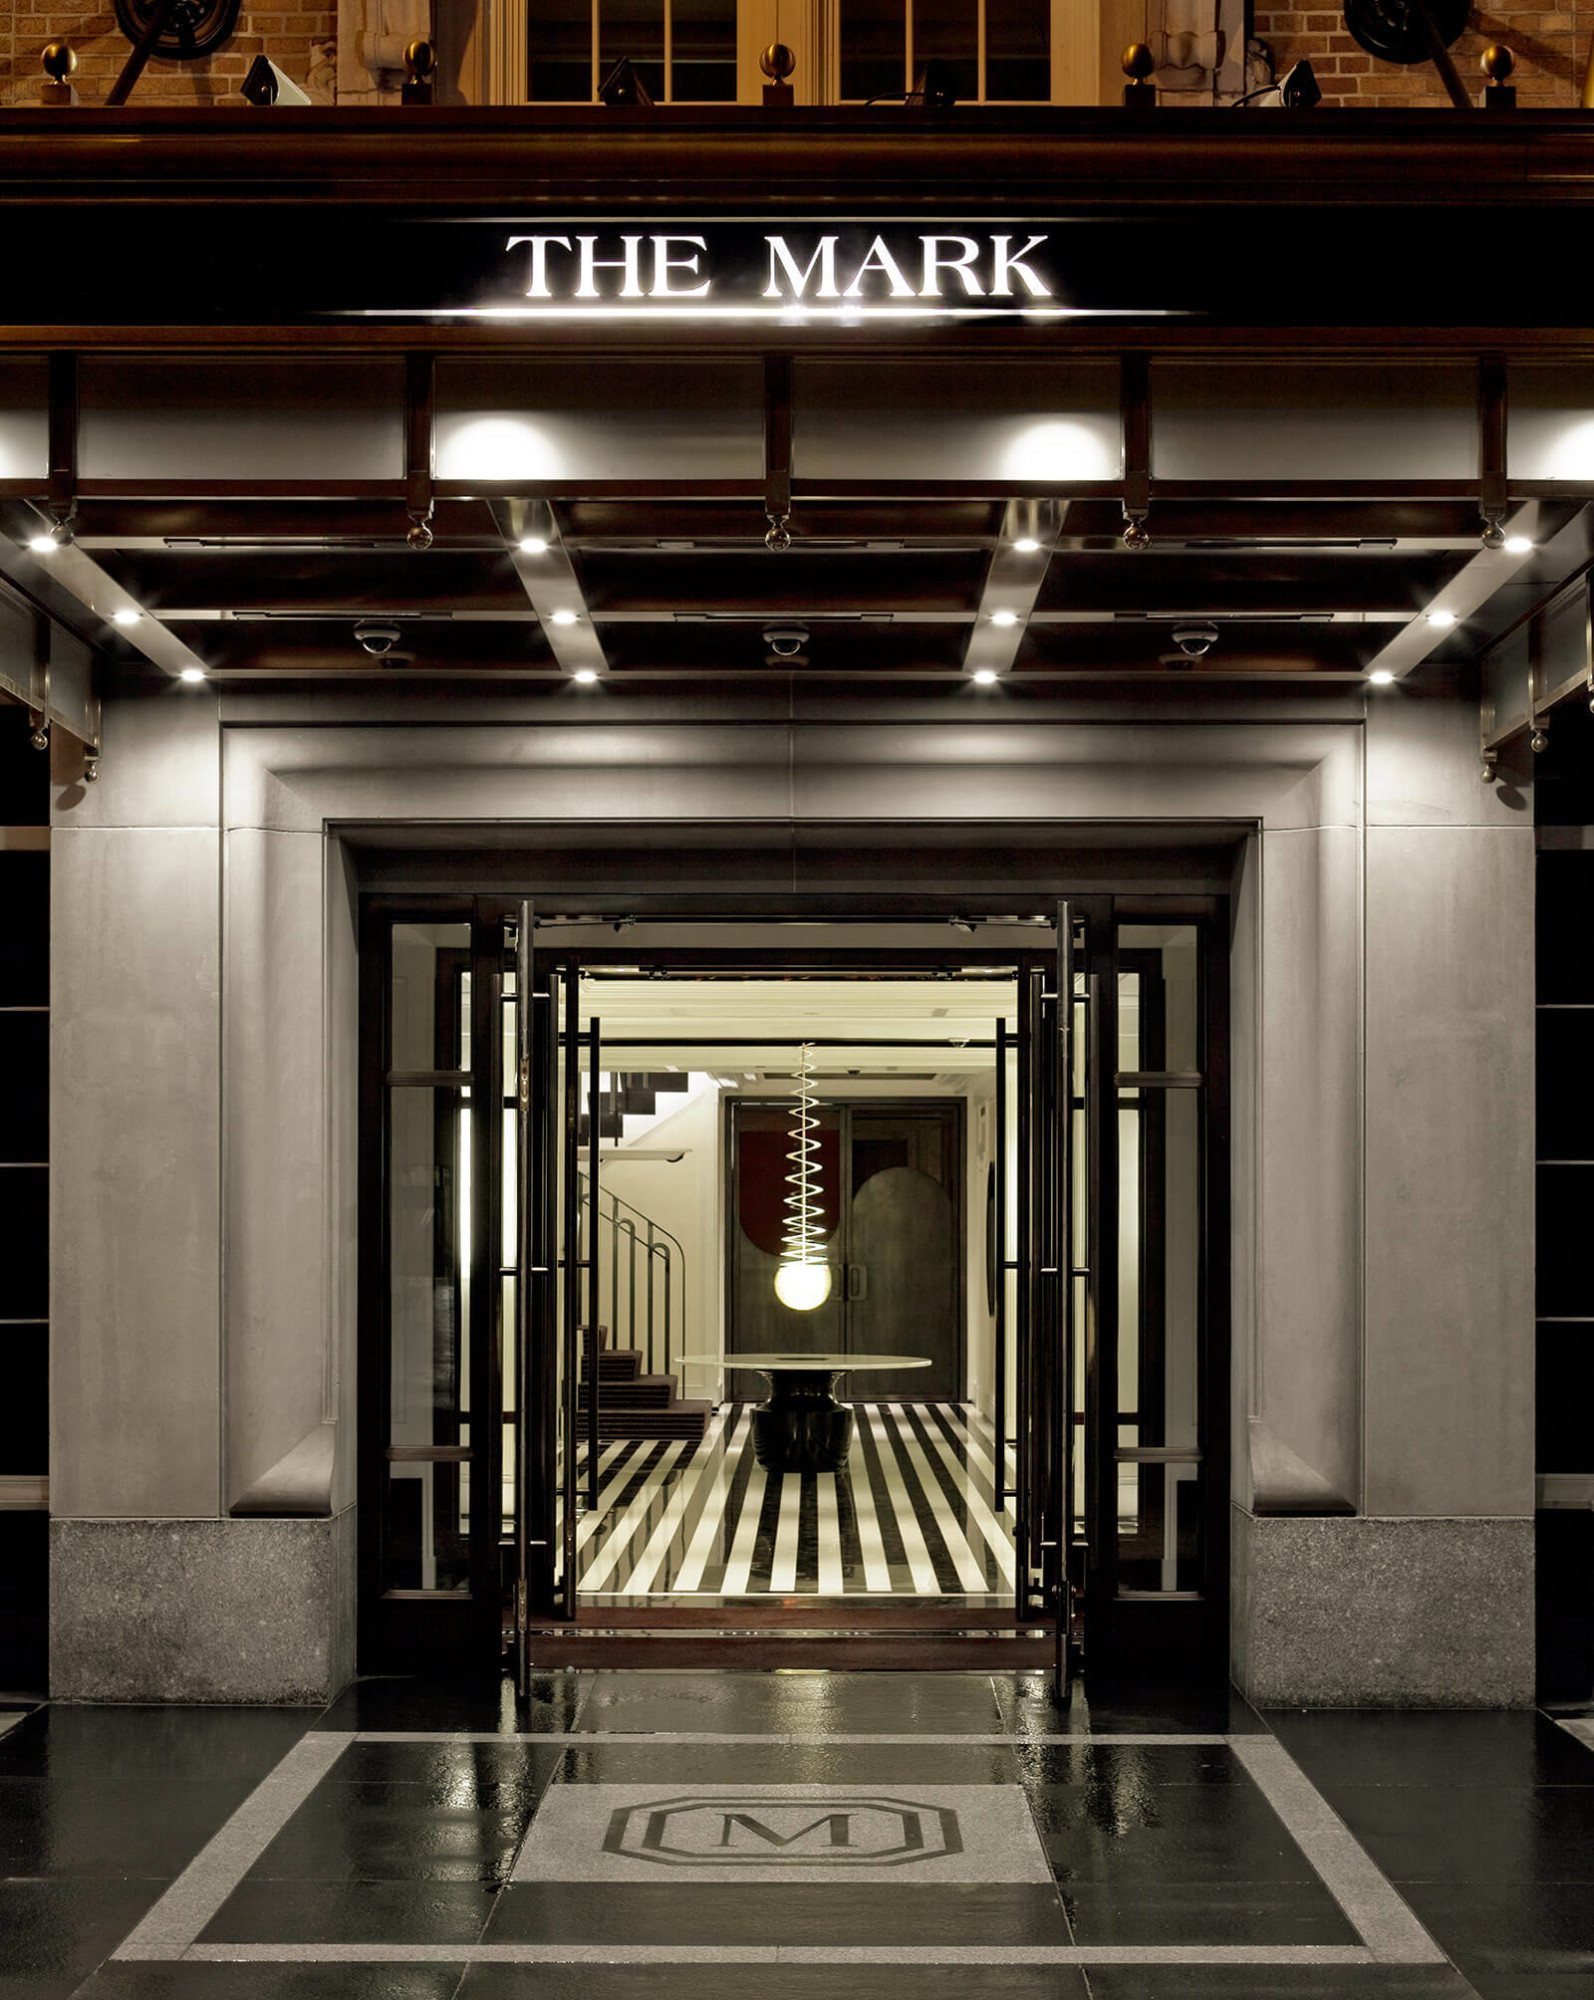 Albergo York The Mark Hotel Nyc S Most Boldly Lavish 5 Star Hotel